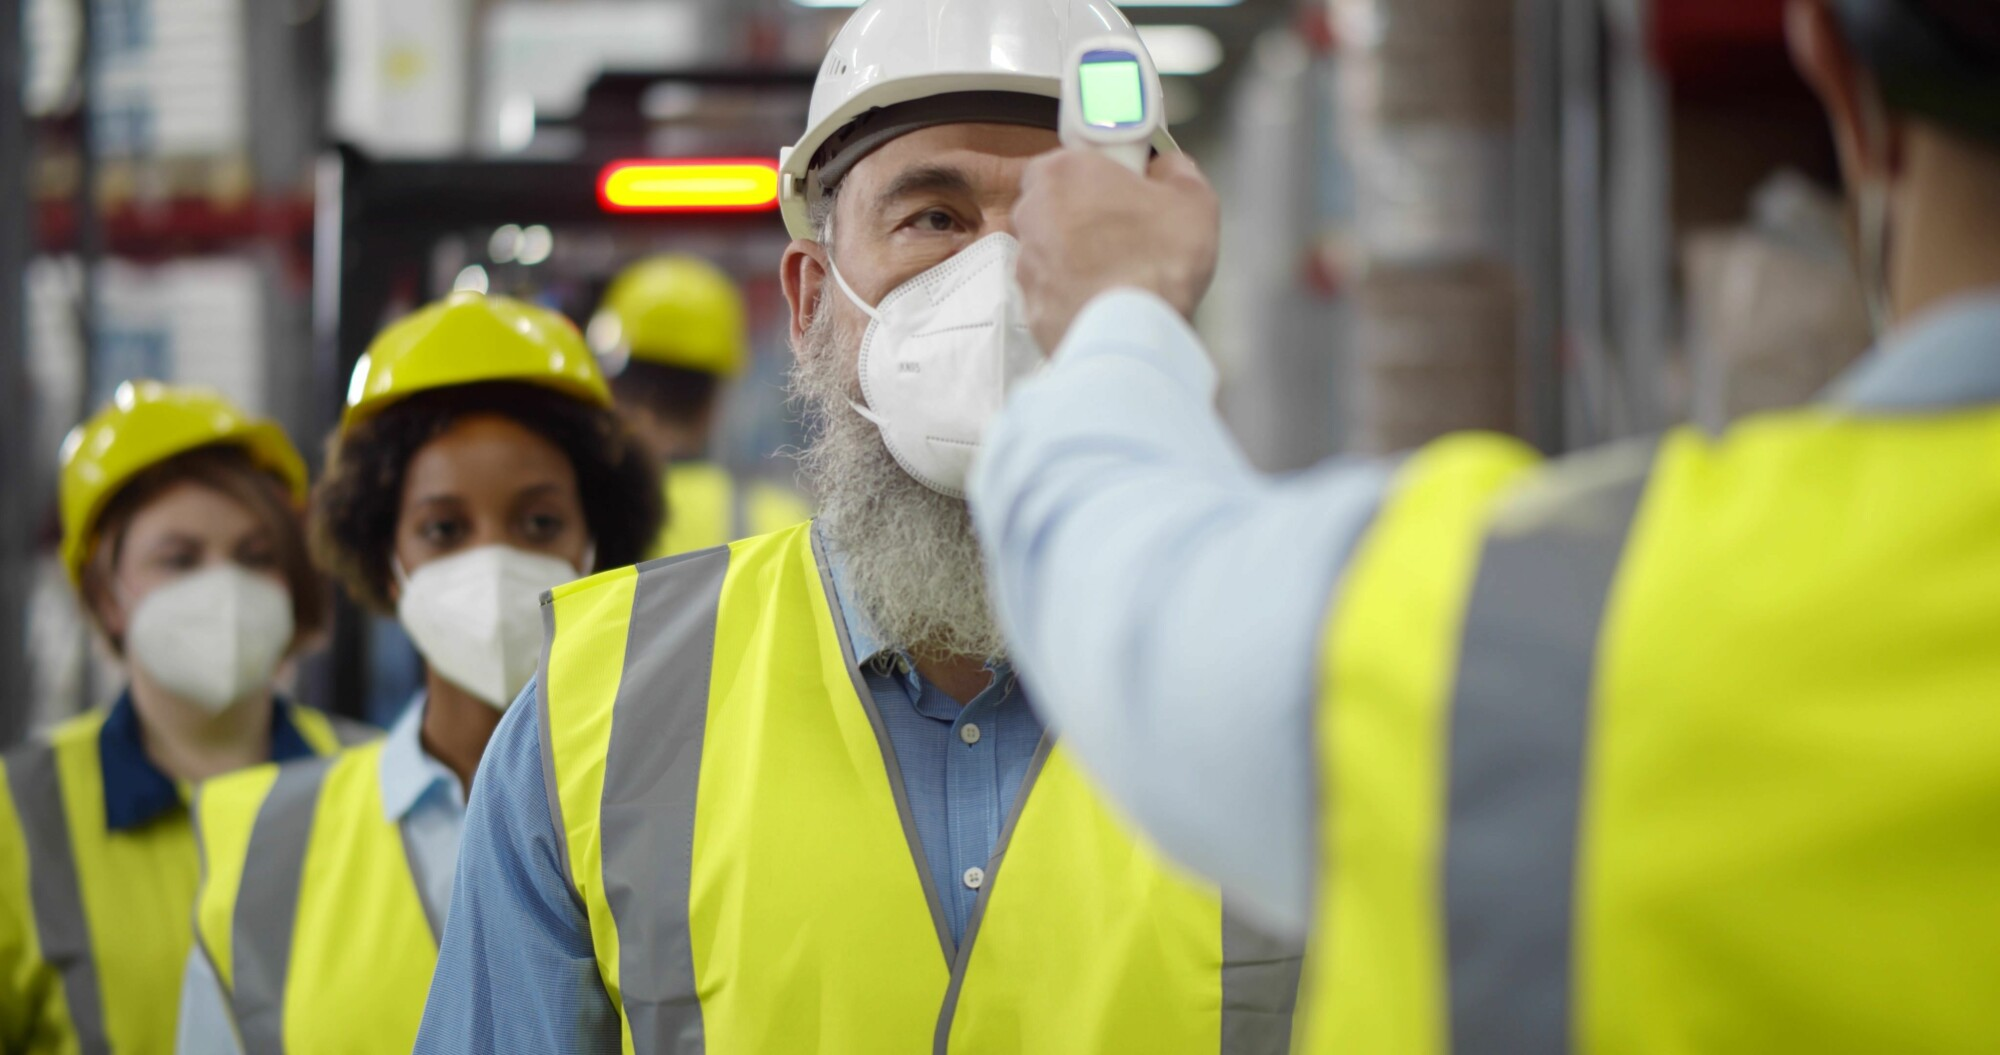 Warehouse Workers Checking Temperatures